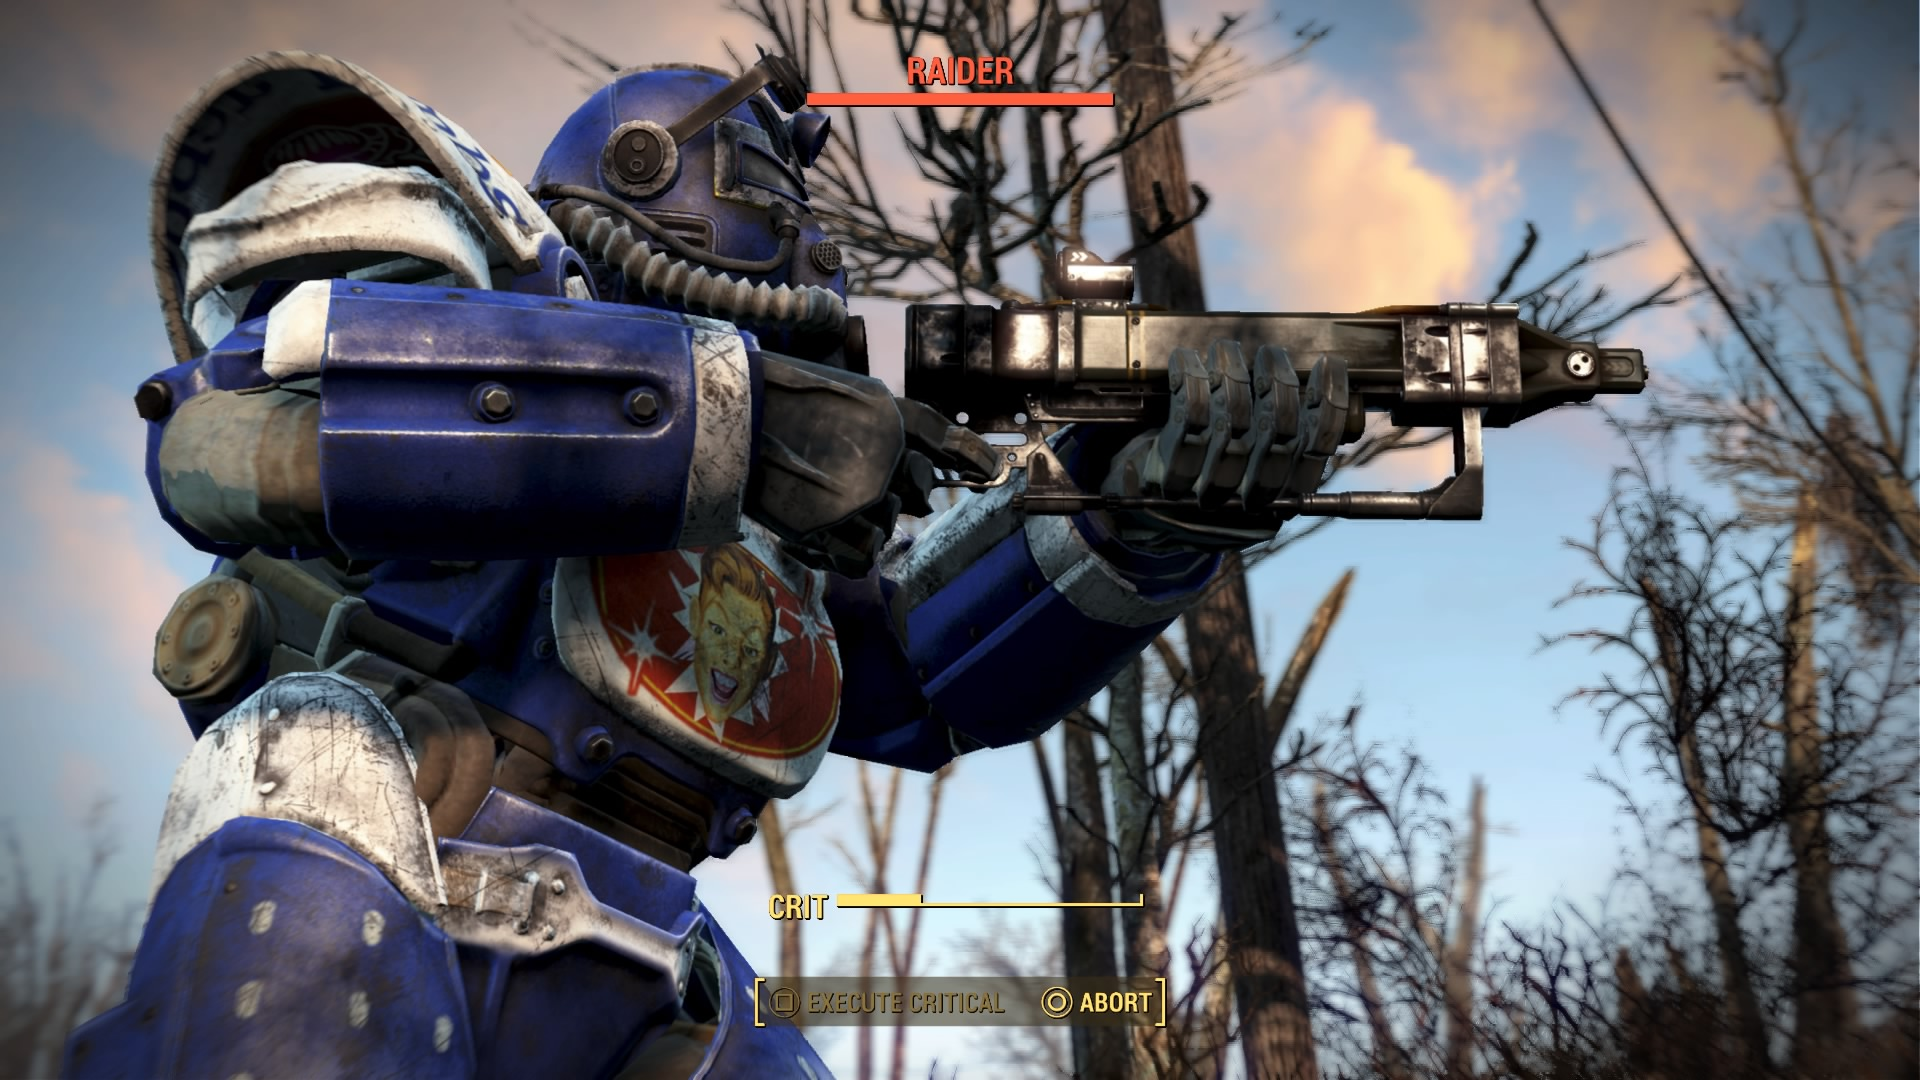 fallout 4 contraptions get two new power armor paint jobs gameranx